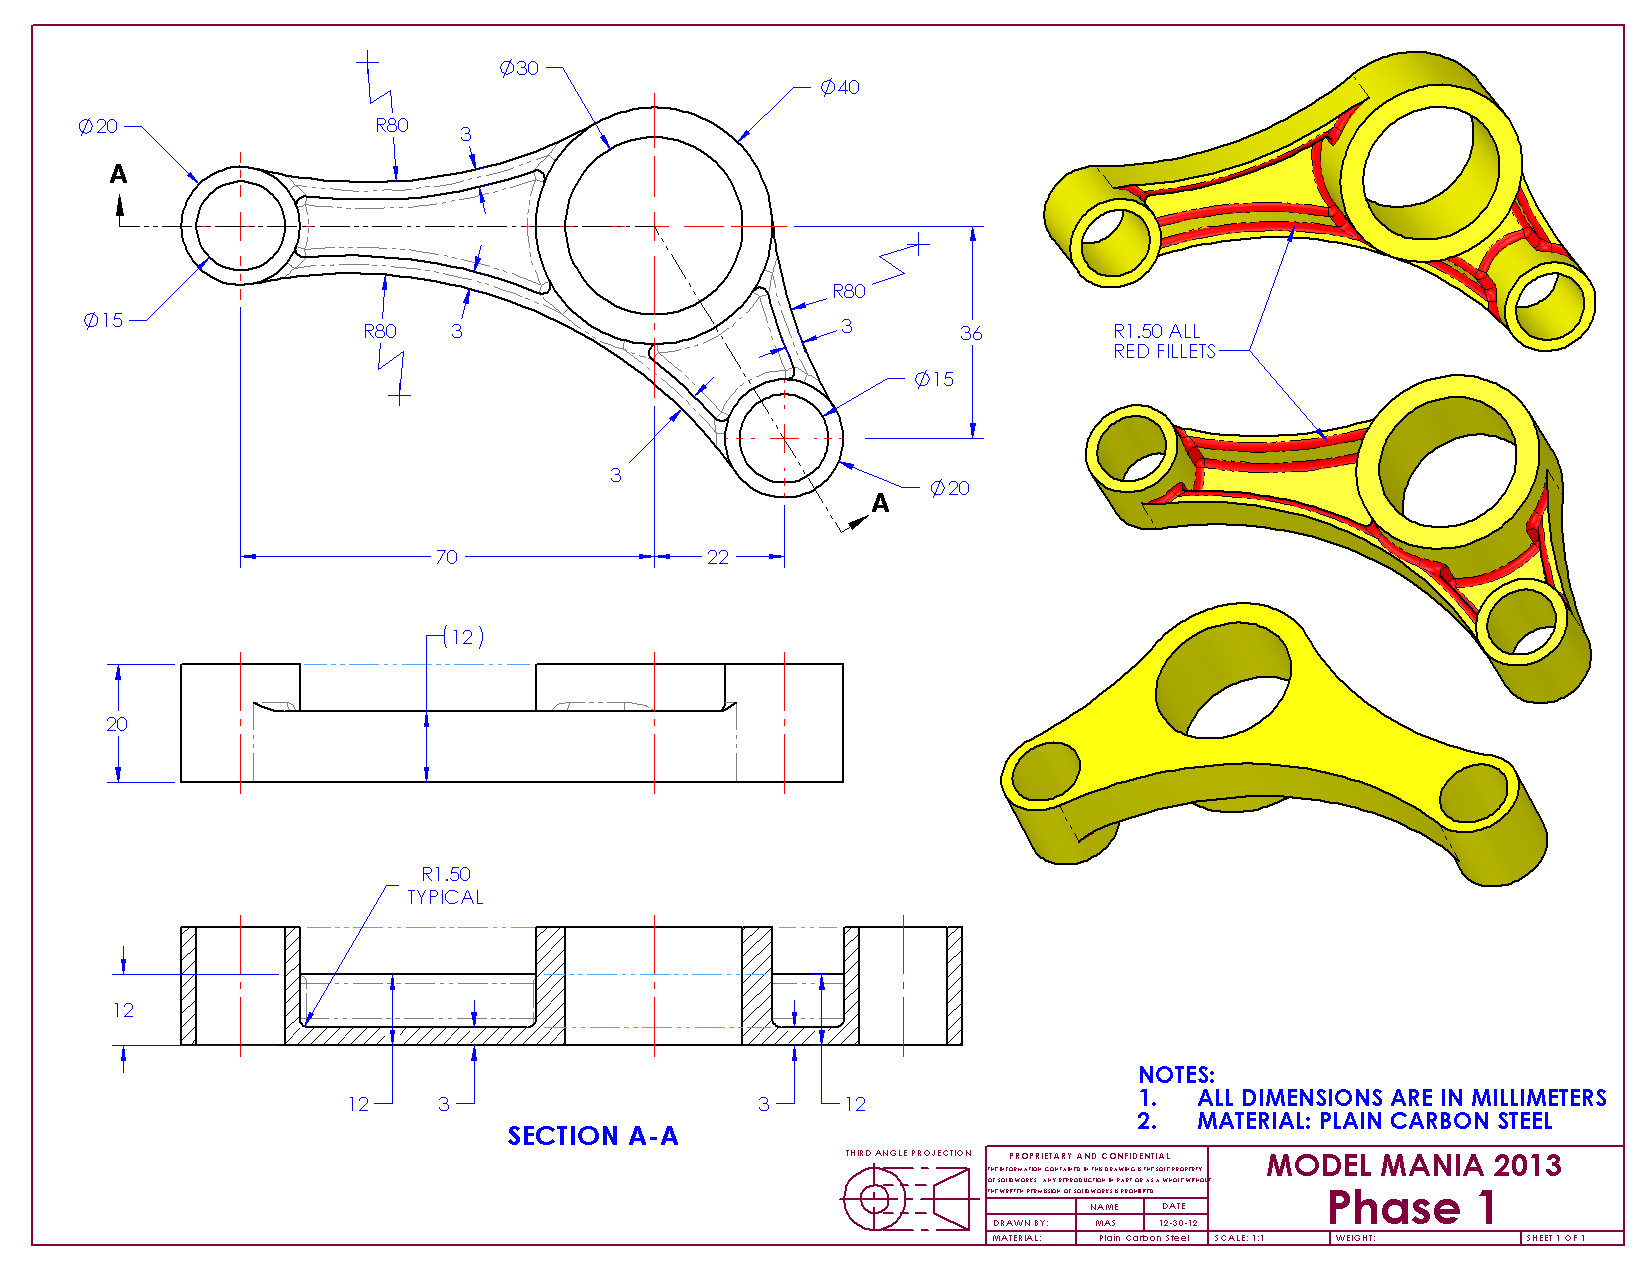 SolidWorks Drawings - ANSI 2013 Training Manual Brand New Cheap